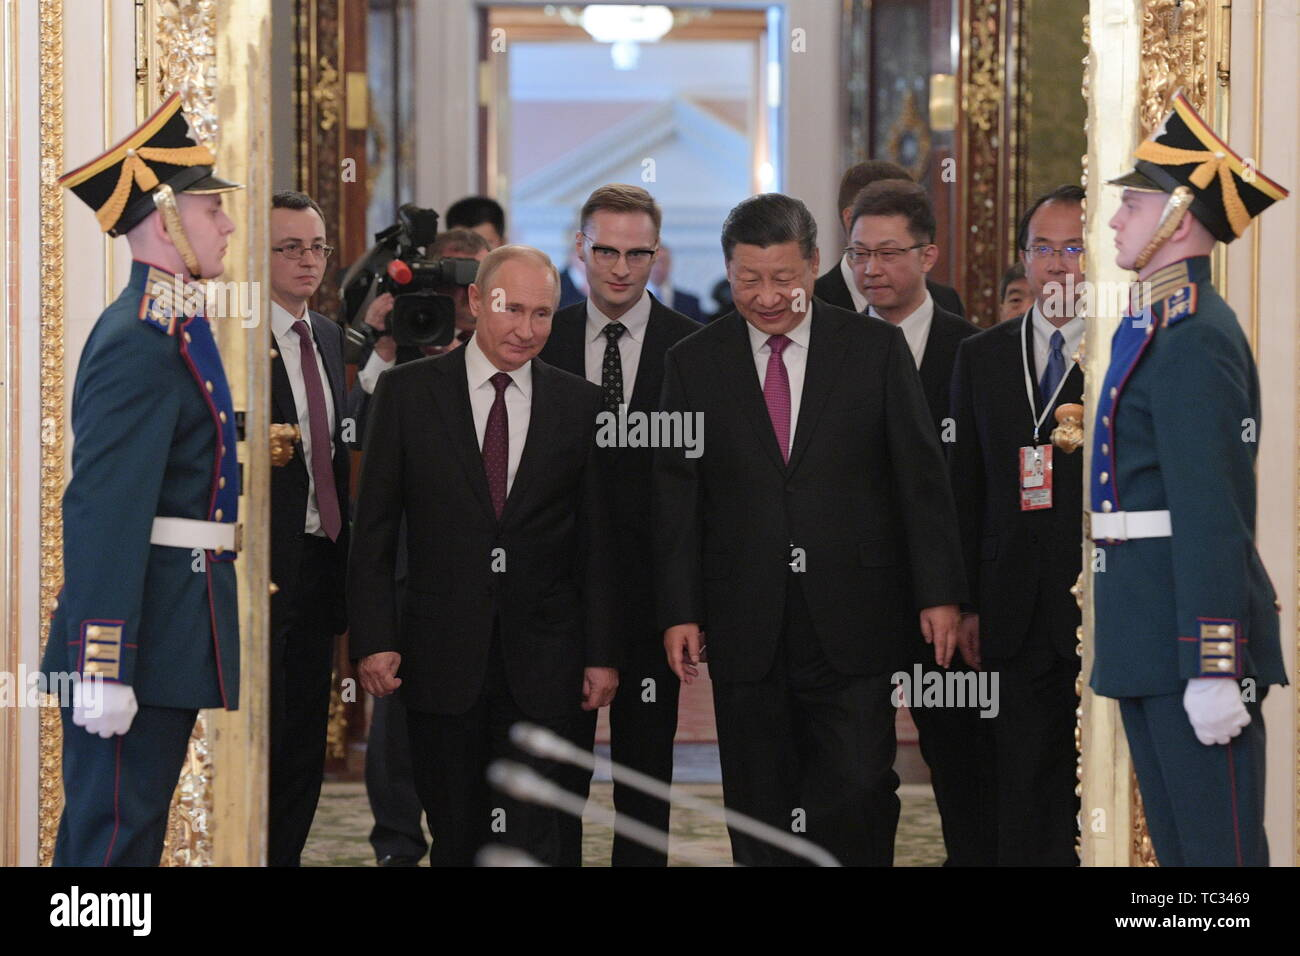 Moscow, Russia. 05th June, 2019. MOSCOW, RUSSIA - JUNE 5, 2019: Russia's President Vladimir Putin and China's President Xi Jinping (L-R front centre) during a meeting in the Moscow Kremlin; the Chinese leader is on a three-day state visit to Russia. Alexei Druzhinin/Russian Presidential Press and Information Office/TASS Credit: ITAR-TASS News Agency/Alamy Live News - Stock Image